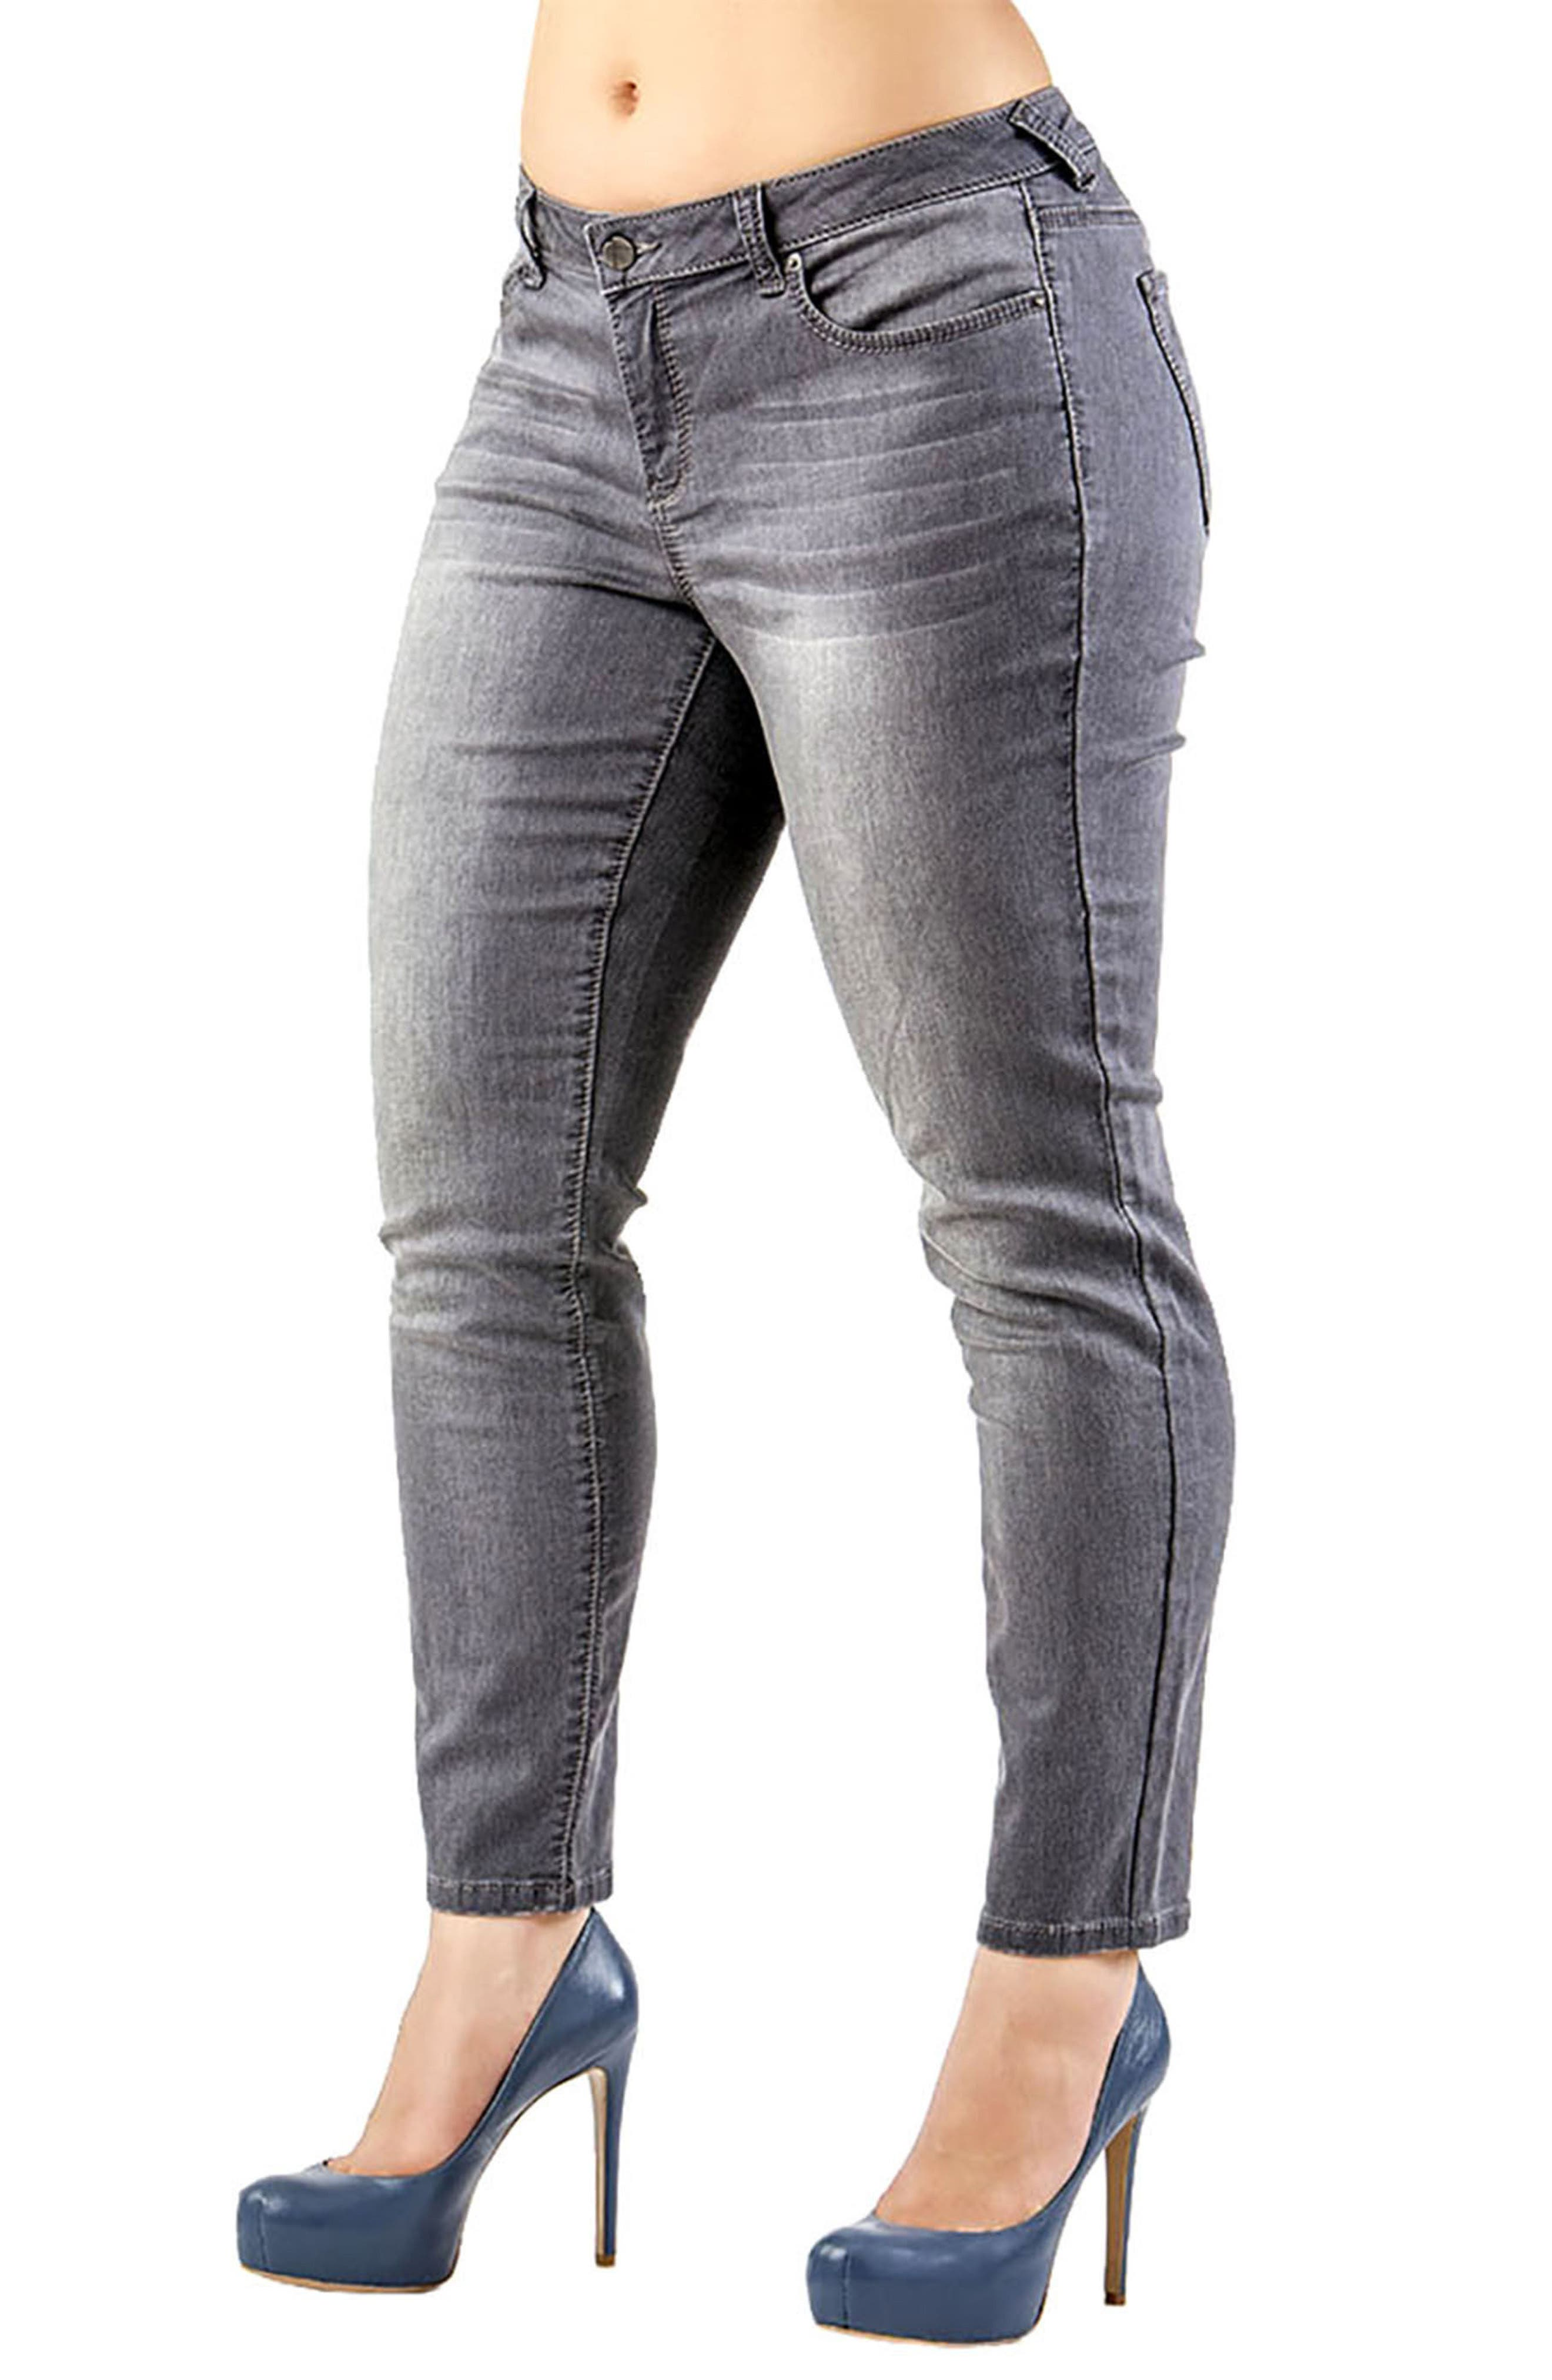 Minnie Stretch Denim Skinny Jeans,                             Main thumbnail 1, color,                             GREY